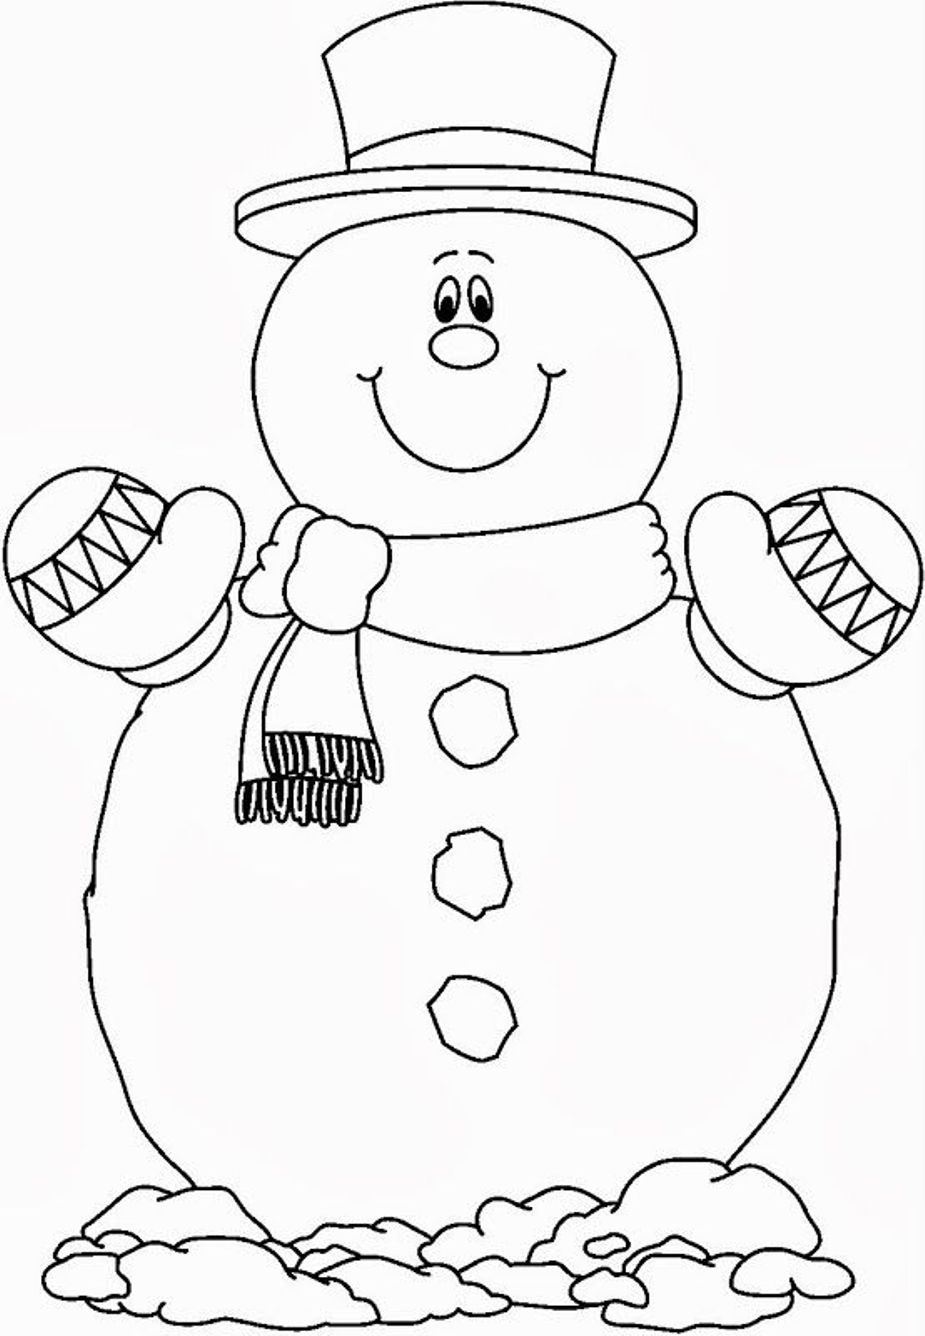 snowmancoloring sheets snowman coloring pages to download and print for free snowmancoloring sheets 1 4